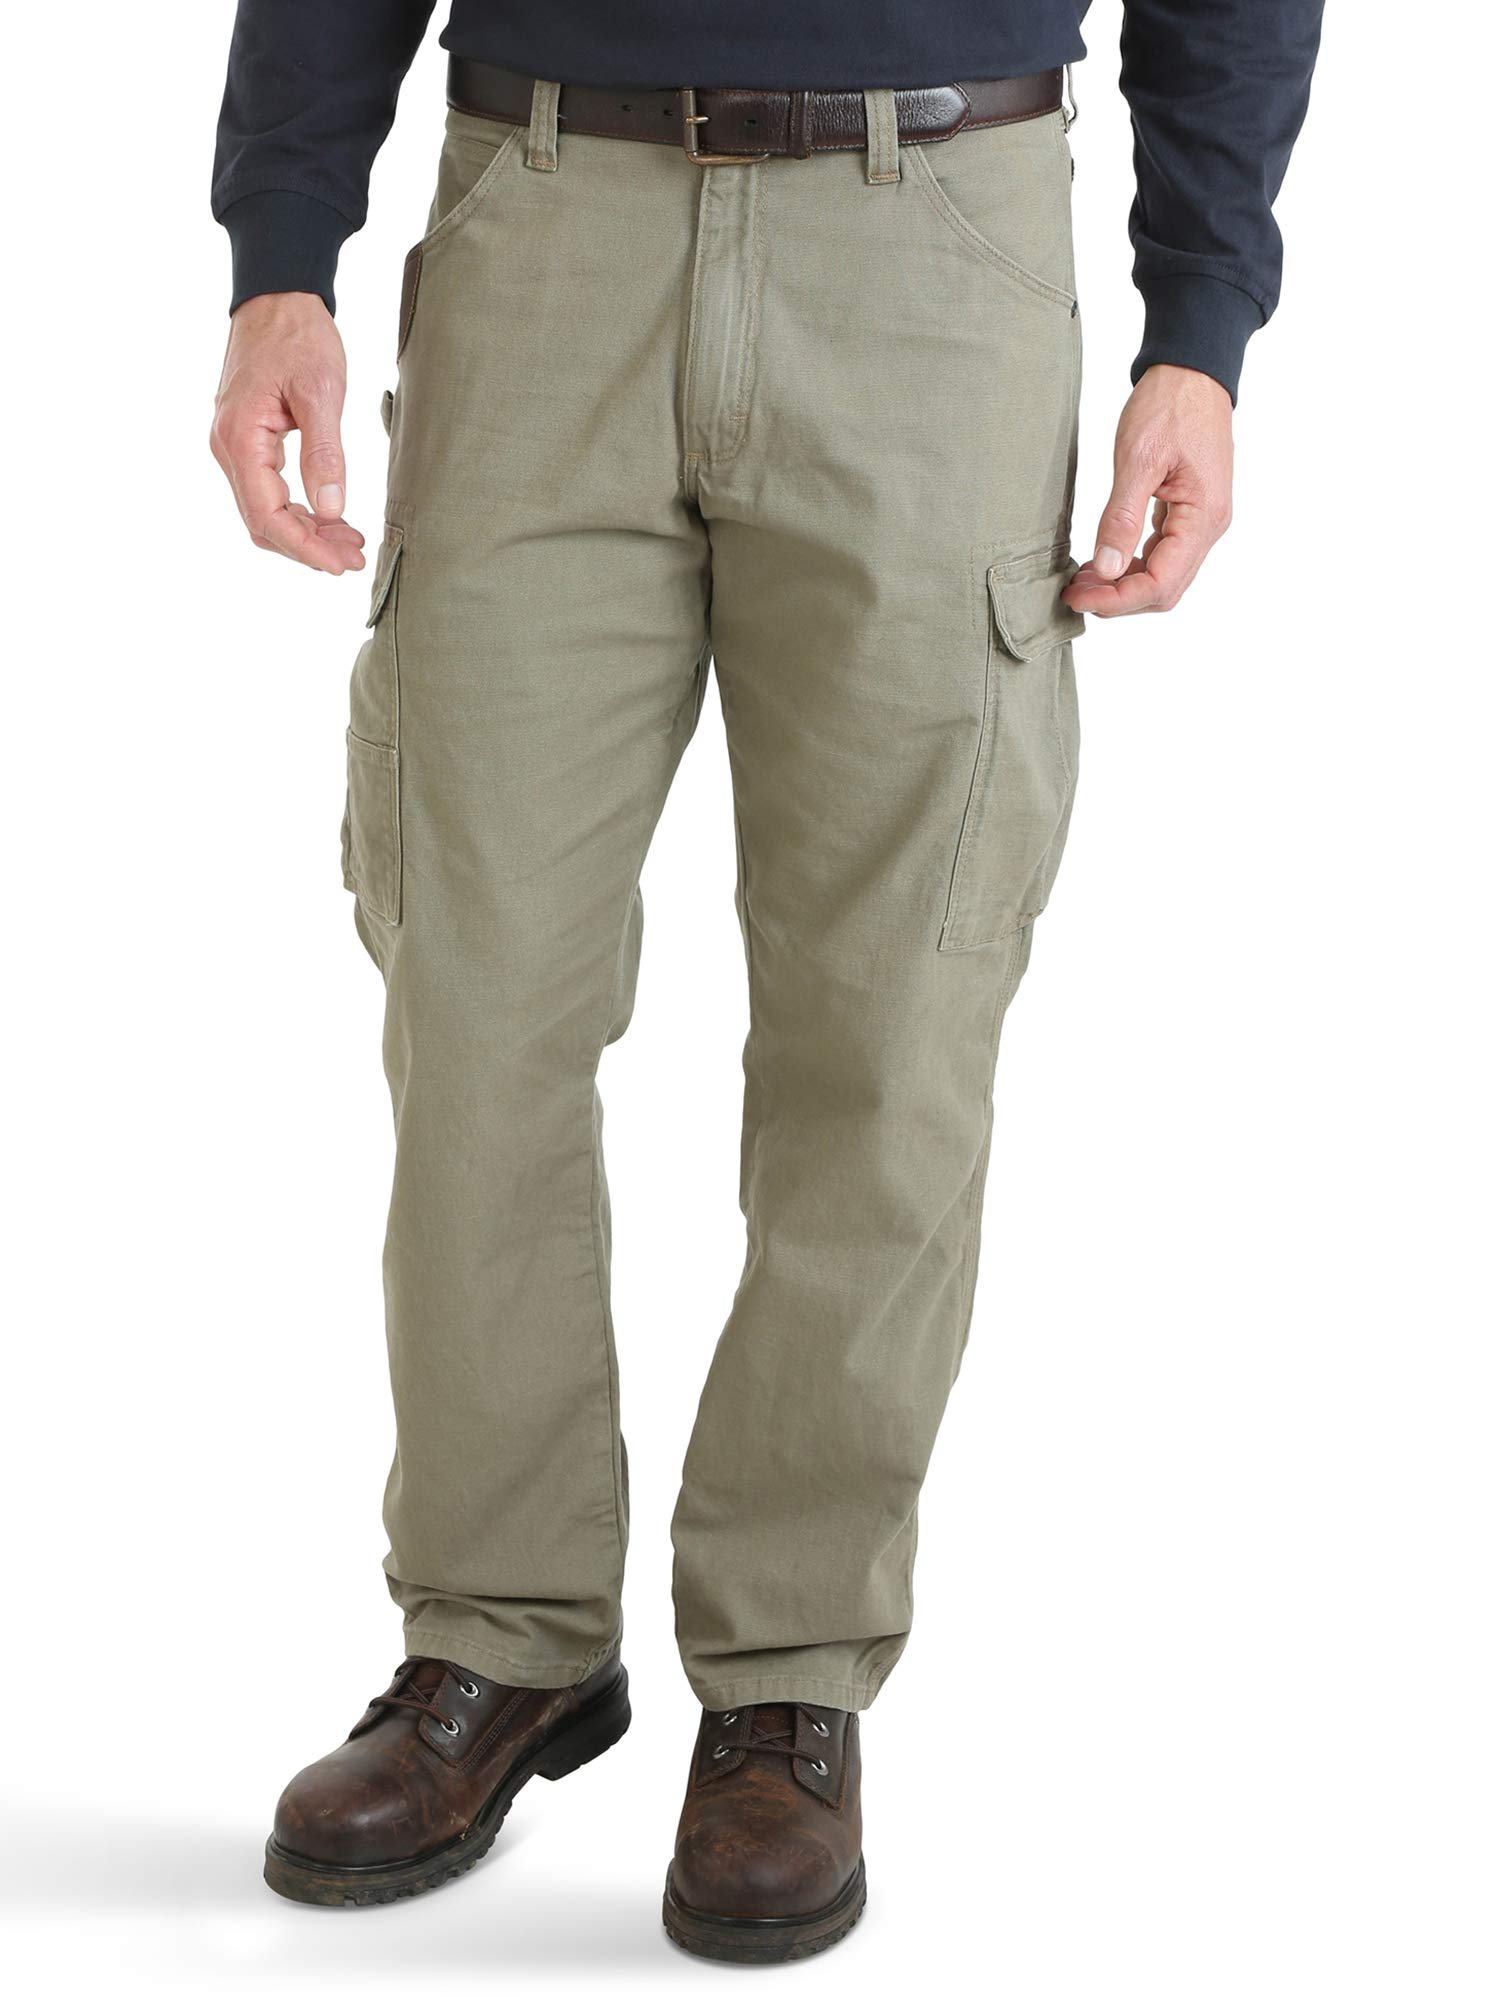 Wrangler Riggs Workwear Men's Advanced Comfort Lightweight Ranger Pant